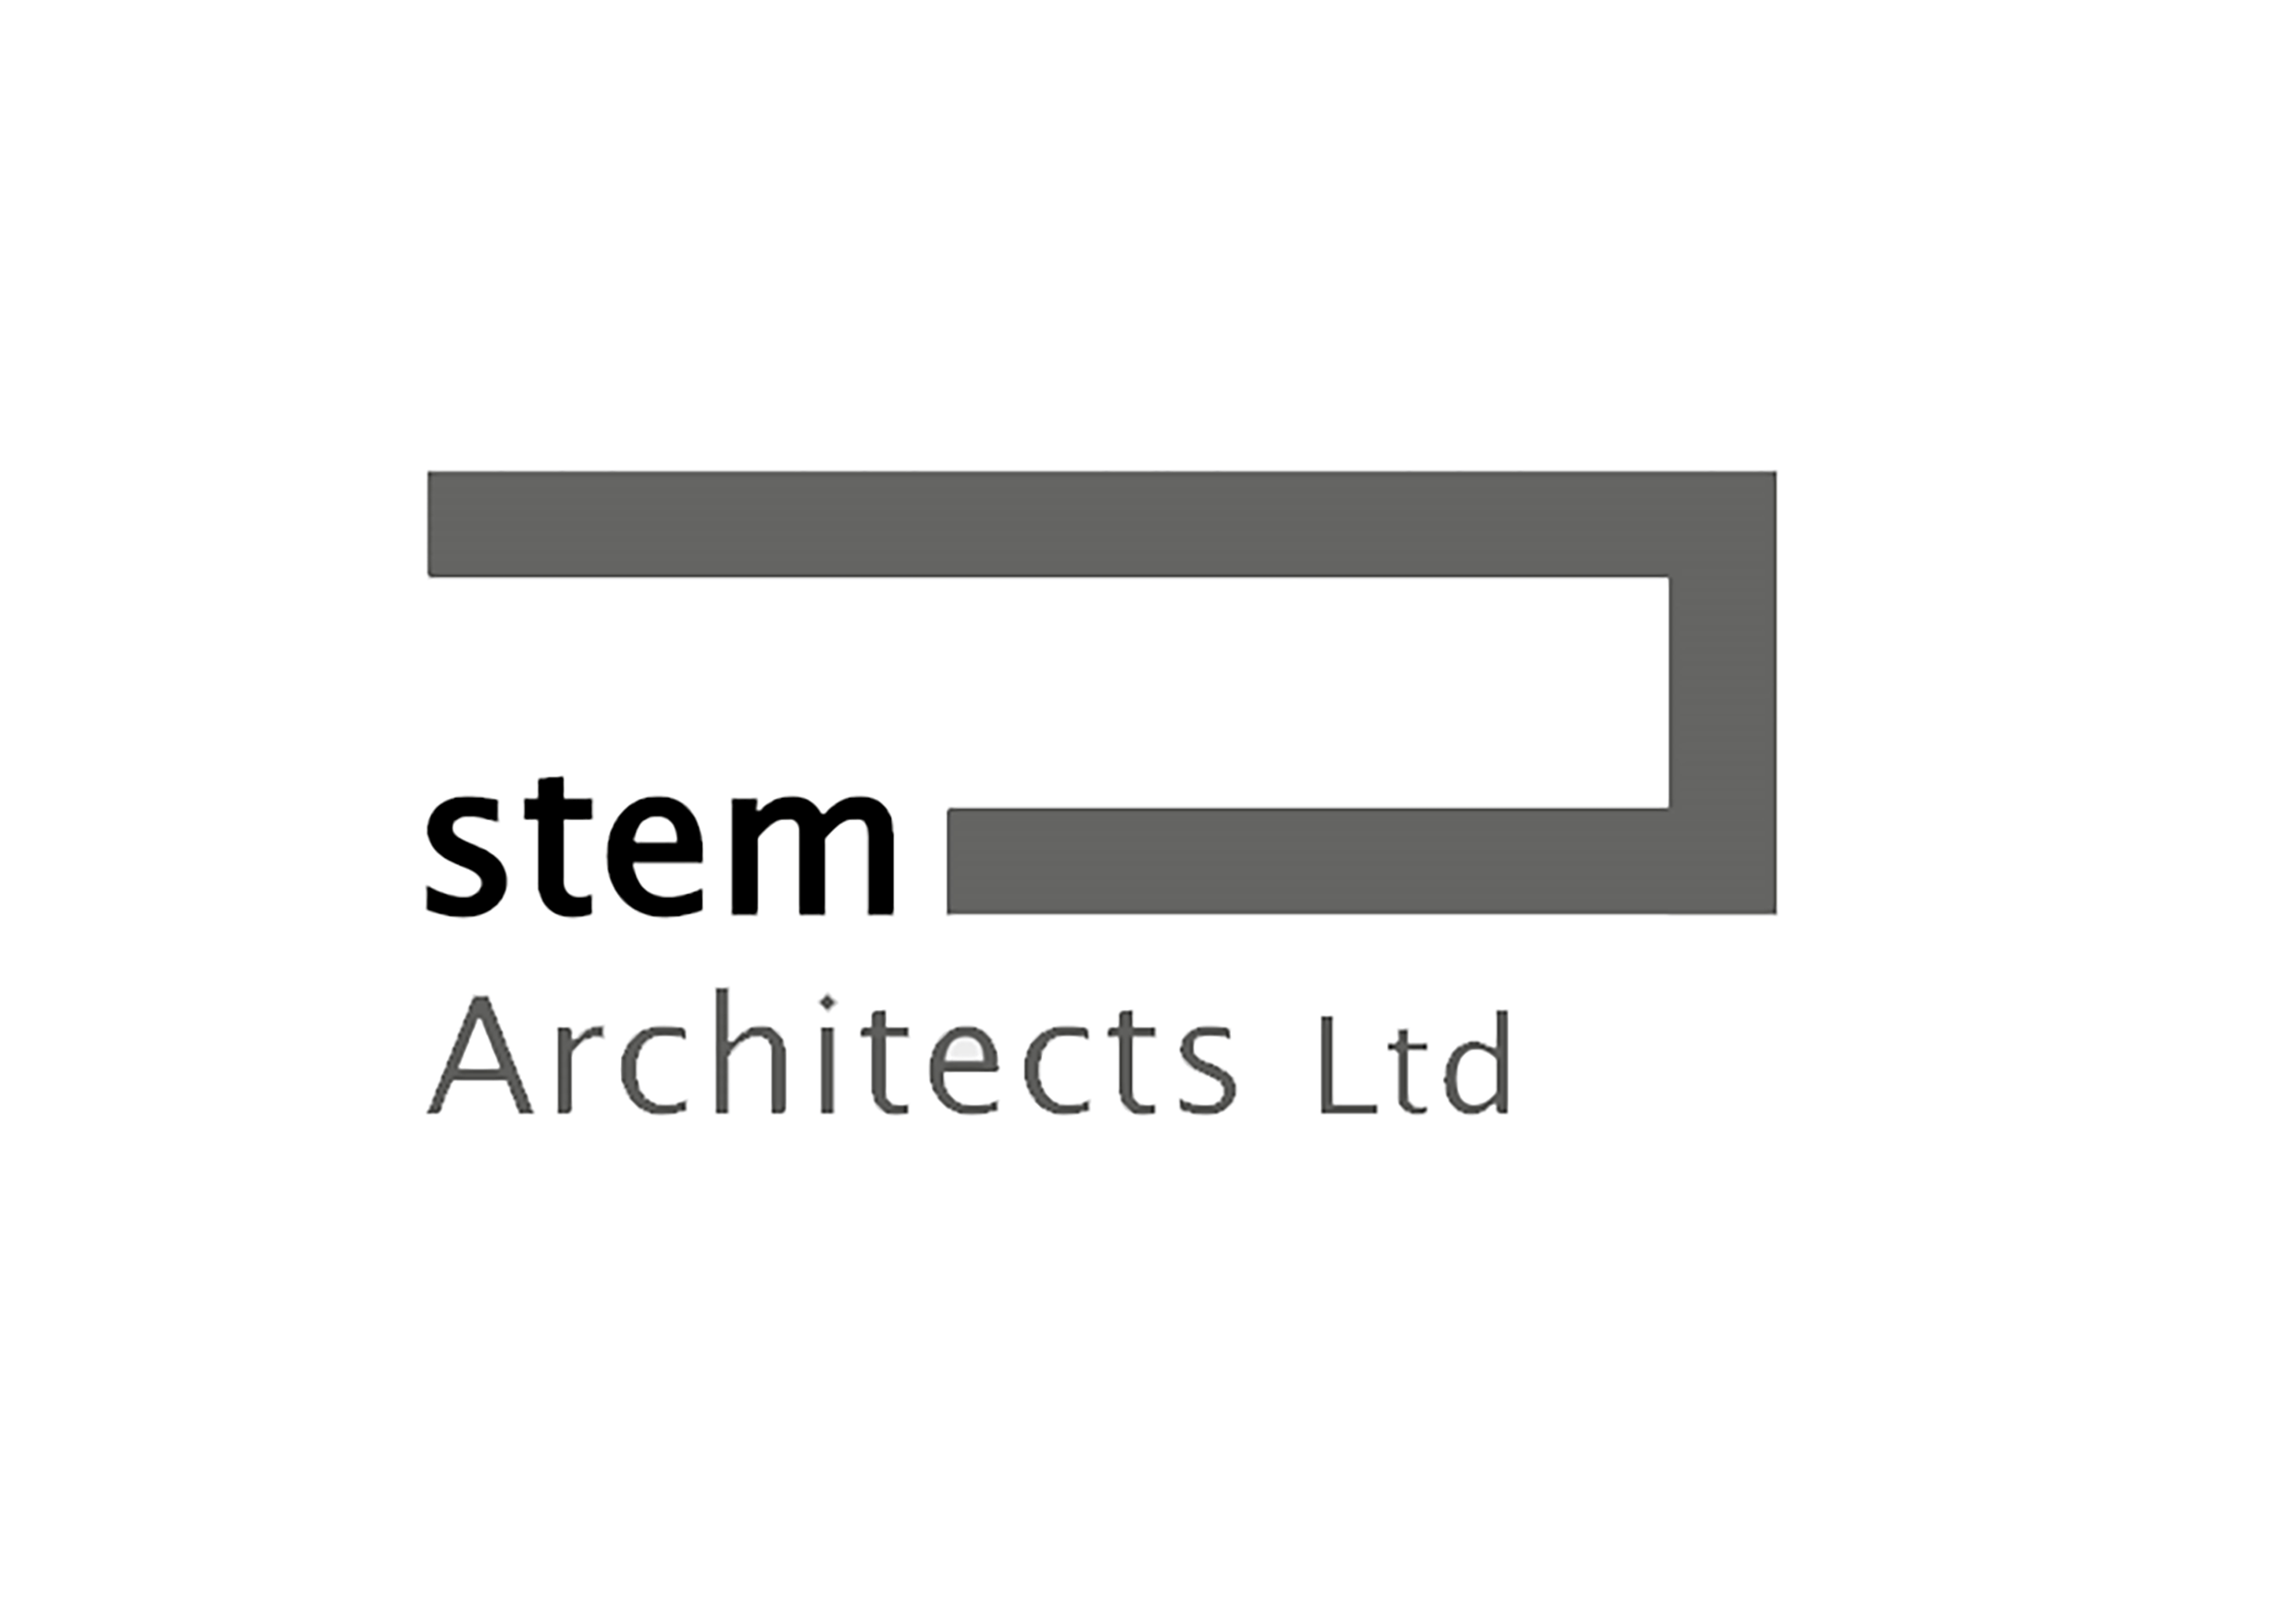 Stem Architects Ltd